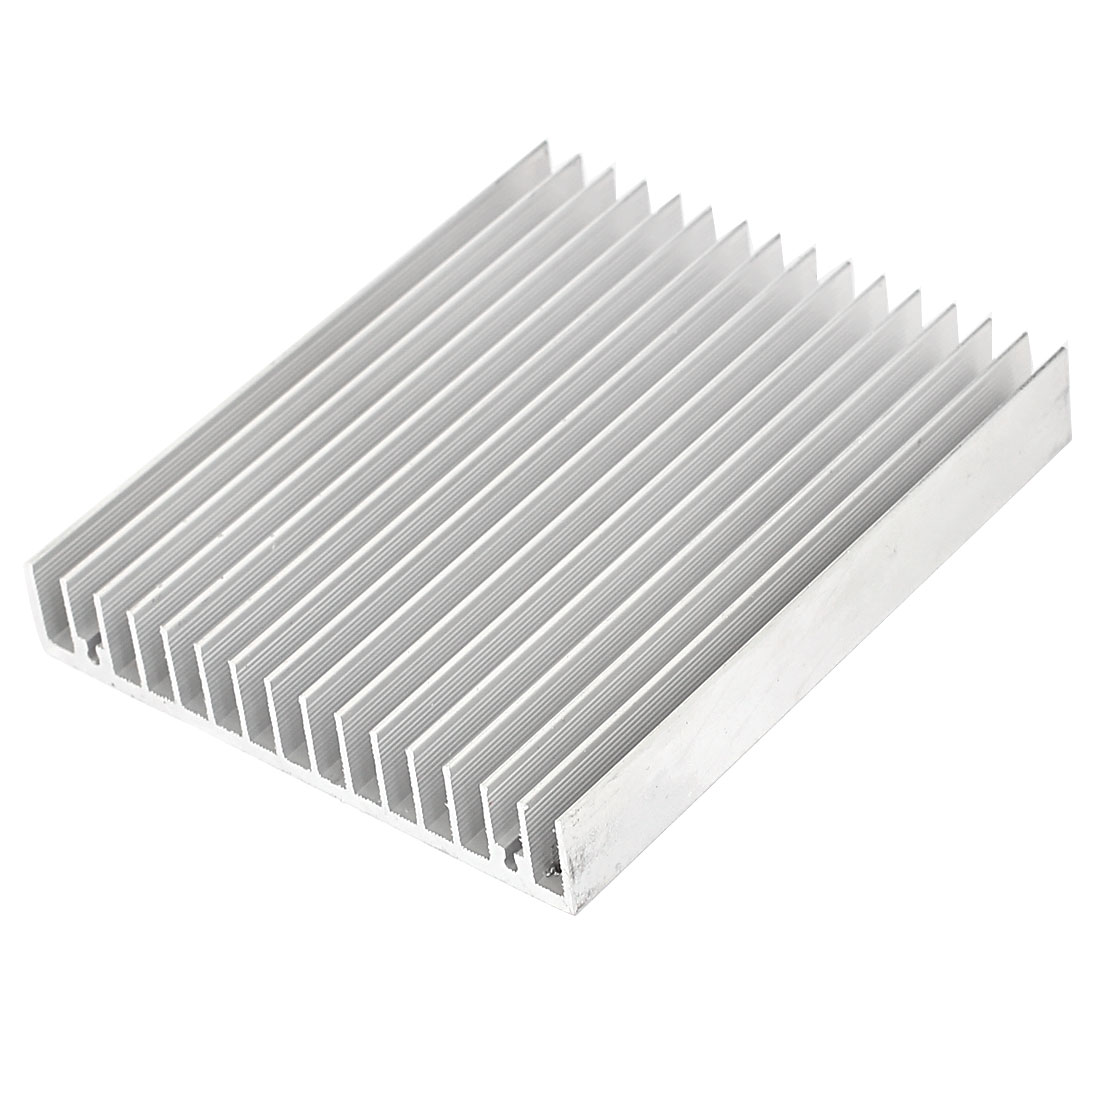 120mx100mx18mm Aluminum Rectangle Heat Diffuse Cooling Fin Heatsink Silver Tone